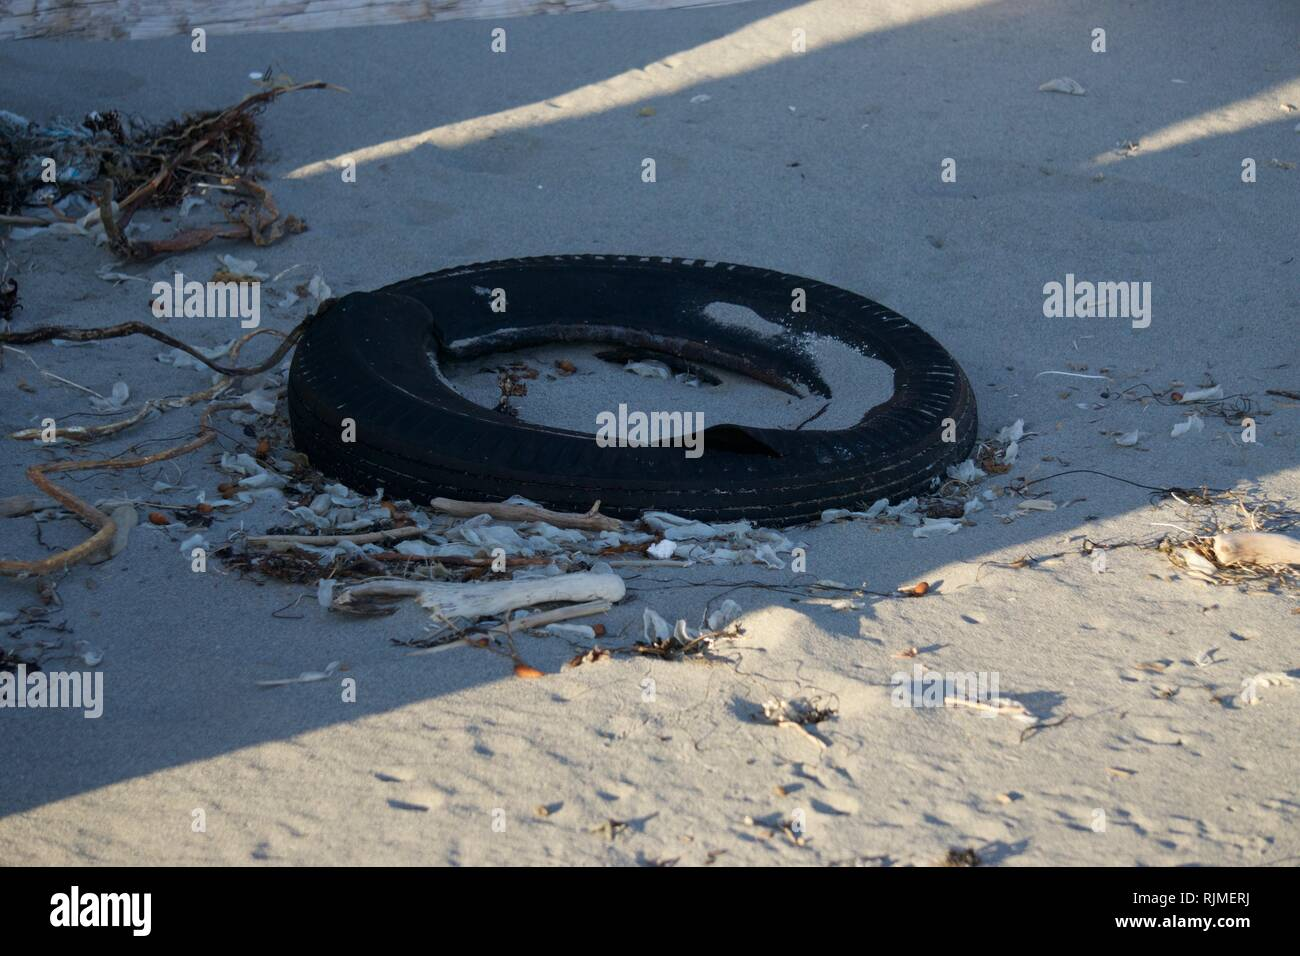 Tire Washed up on the Beach - Stock Image